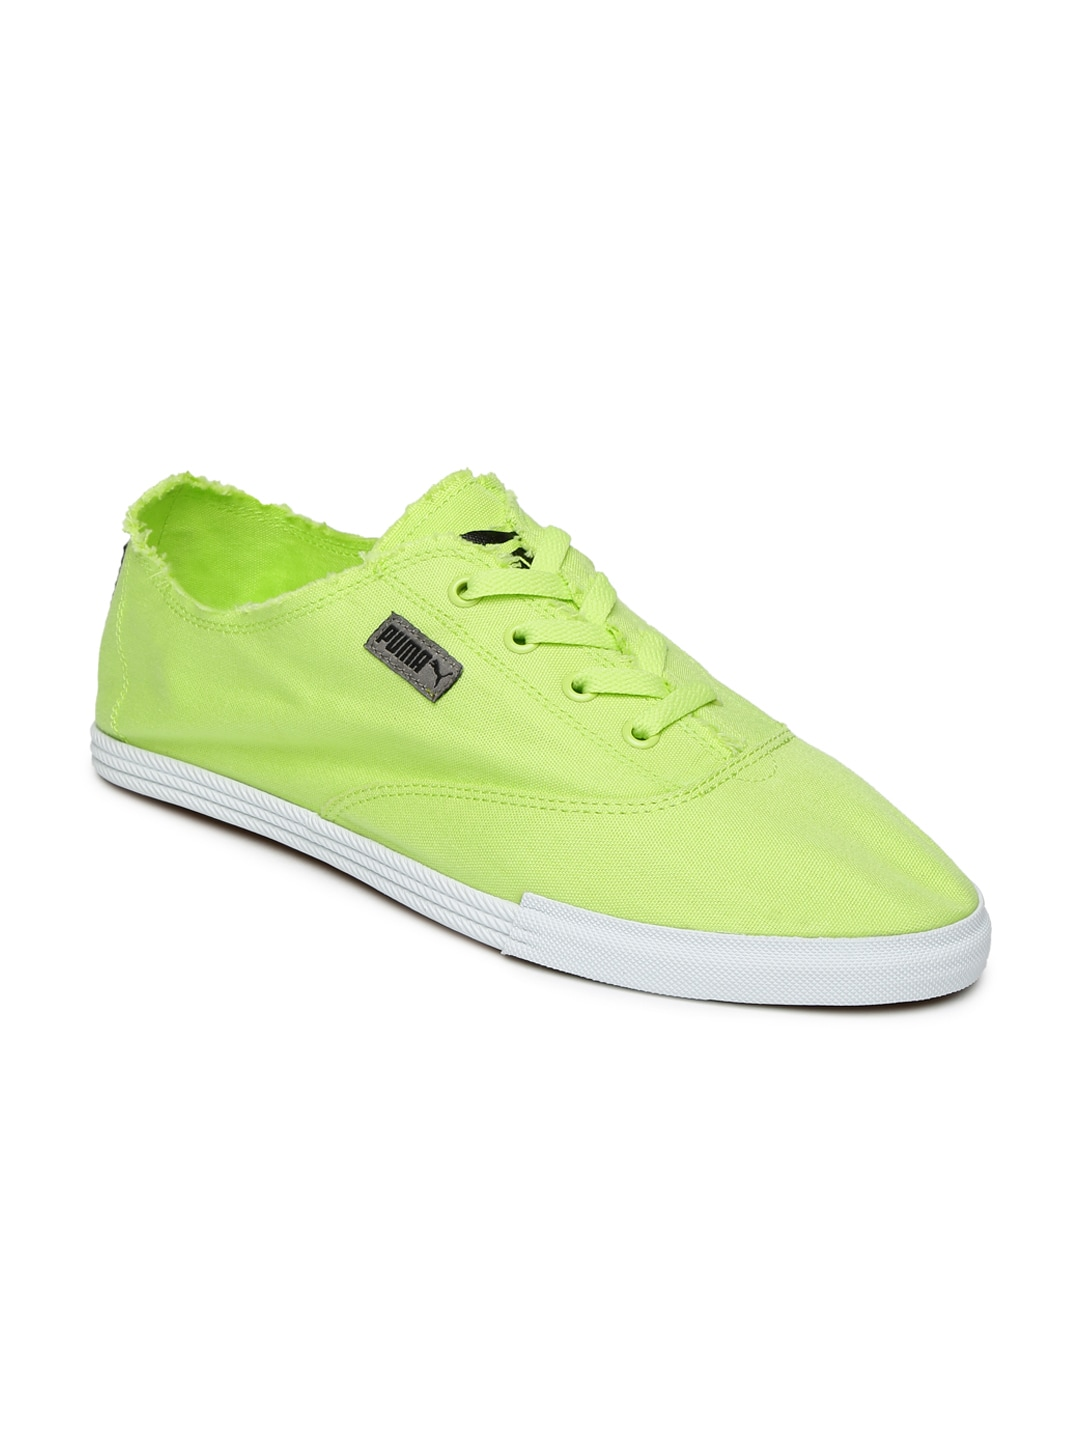 Puma 36212604 Men Lime Green Sneakers - Best Price in India ... c0628e13a91f